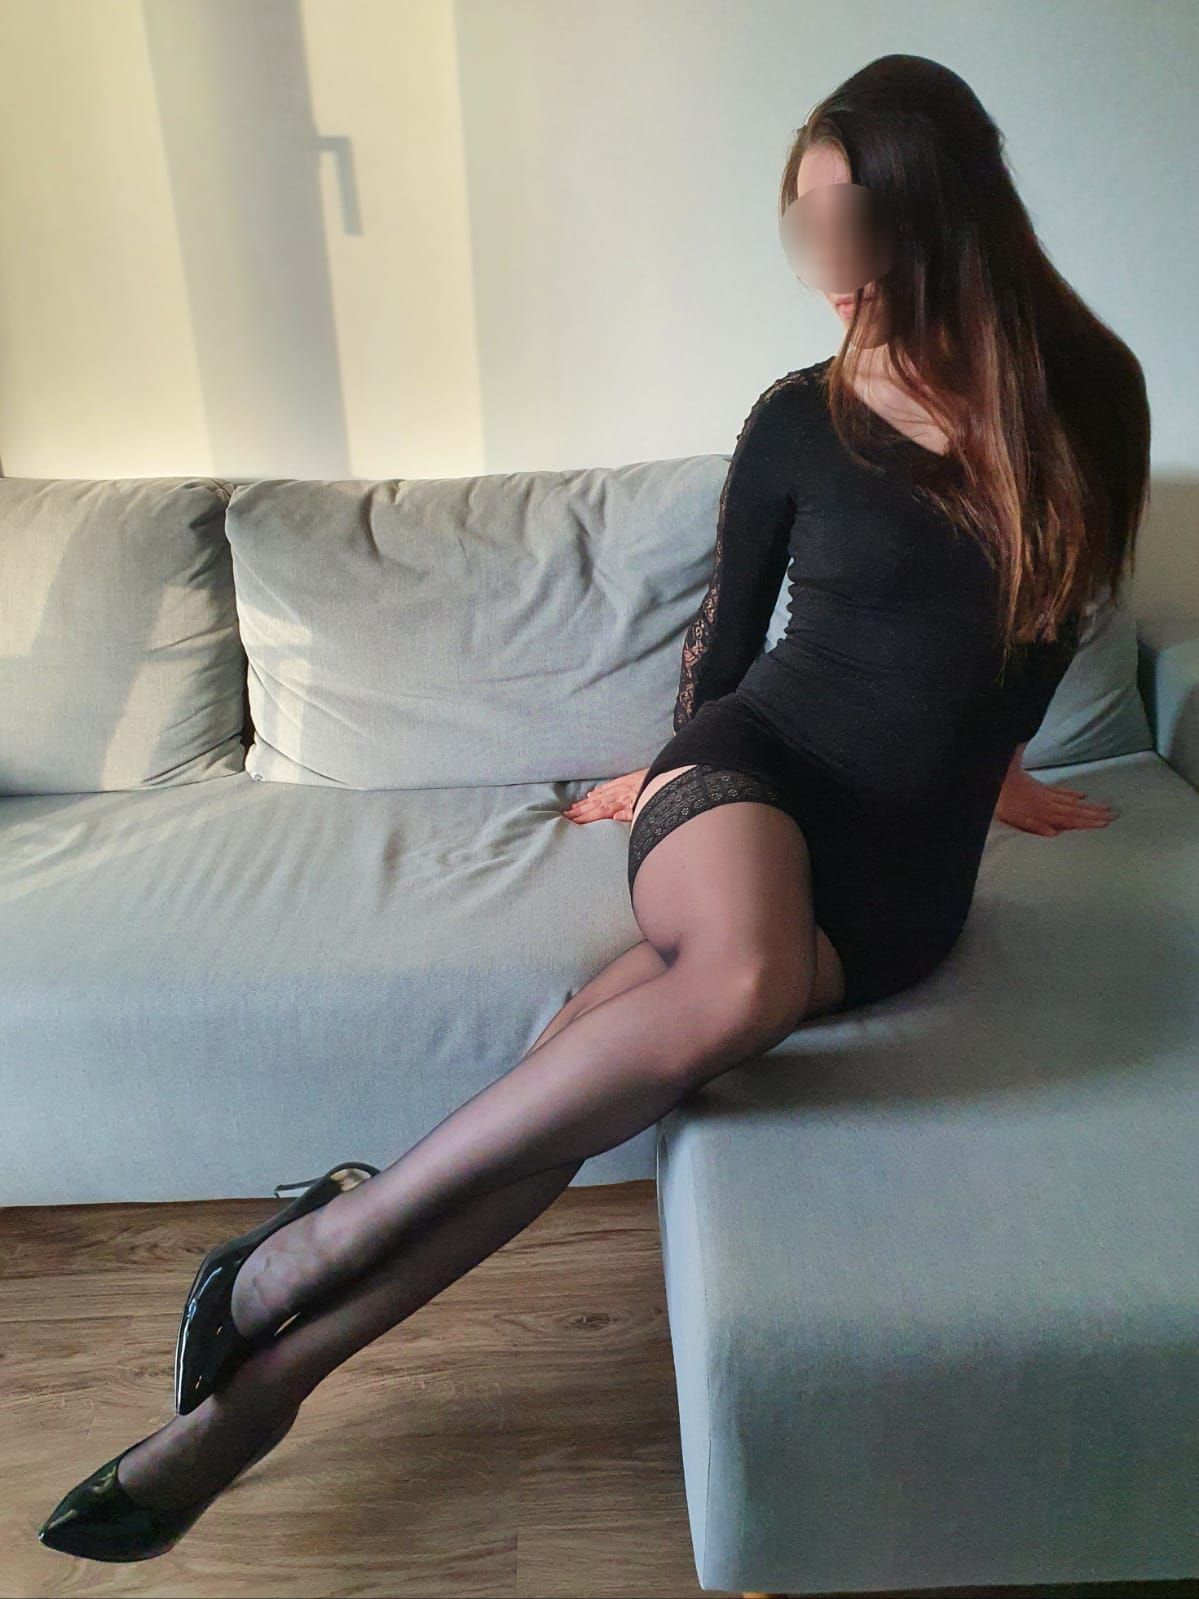 Privatmodelle Escort77 Berlin